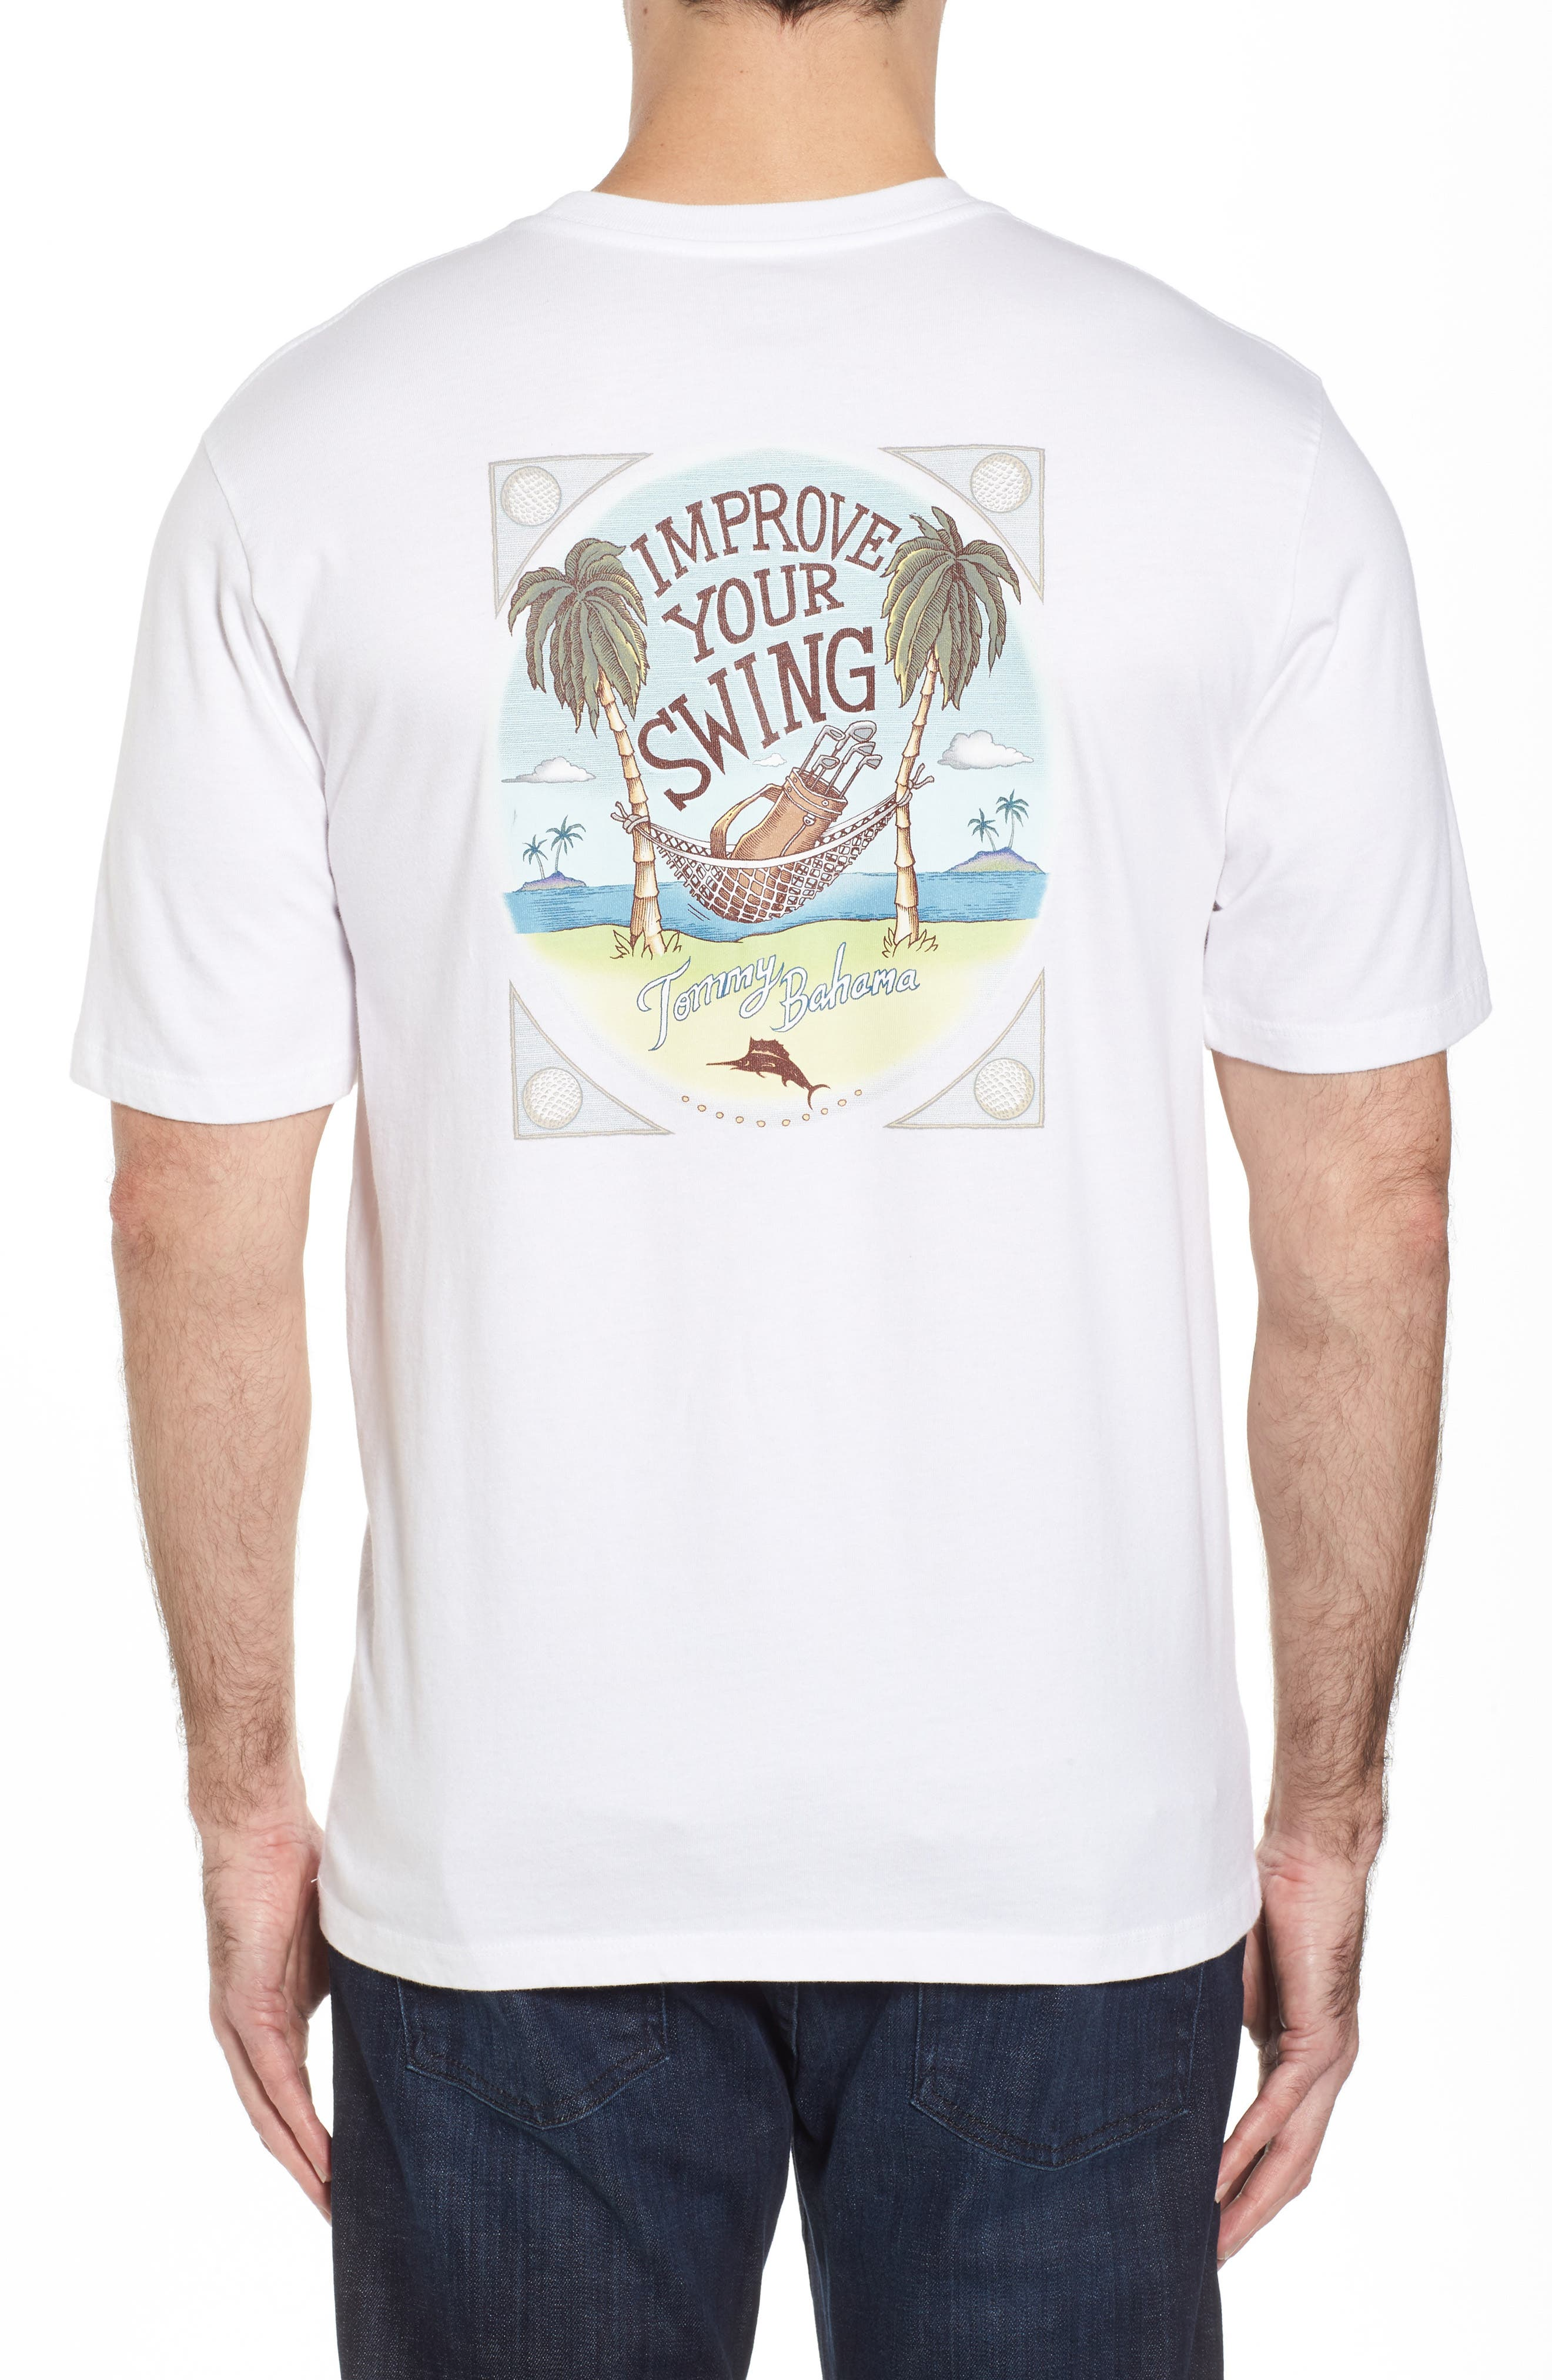 Improve Your Swing T-Shirt,                             Main thumbnail 1, color,                             White